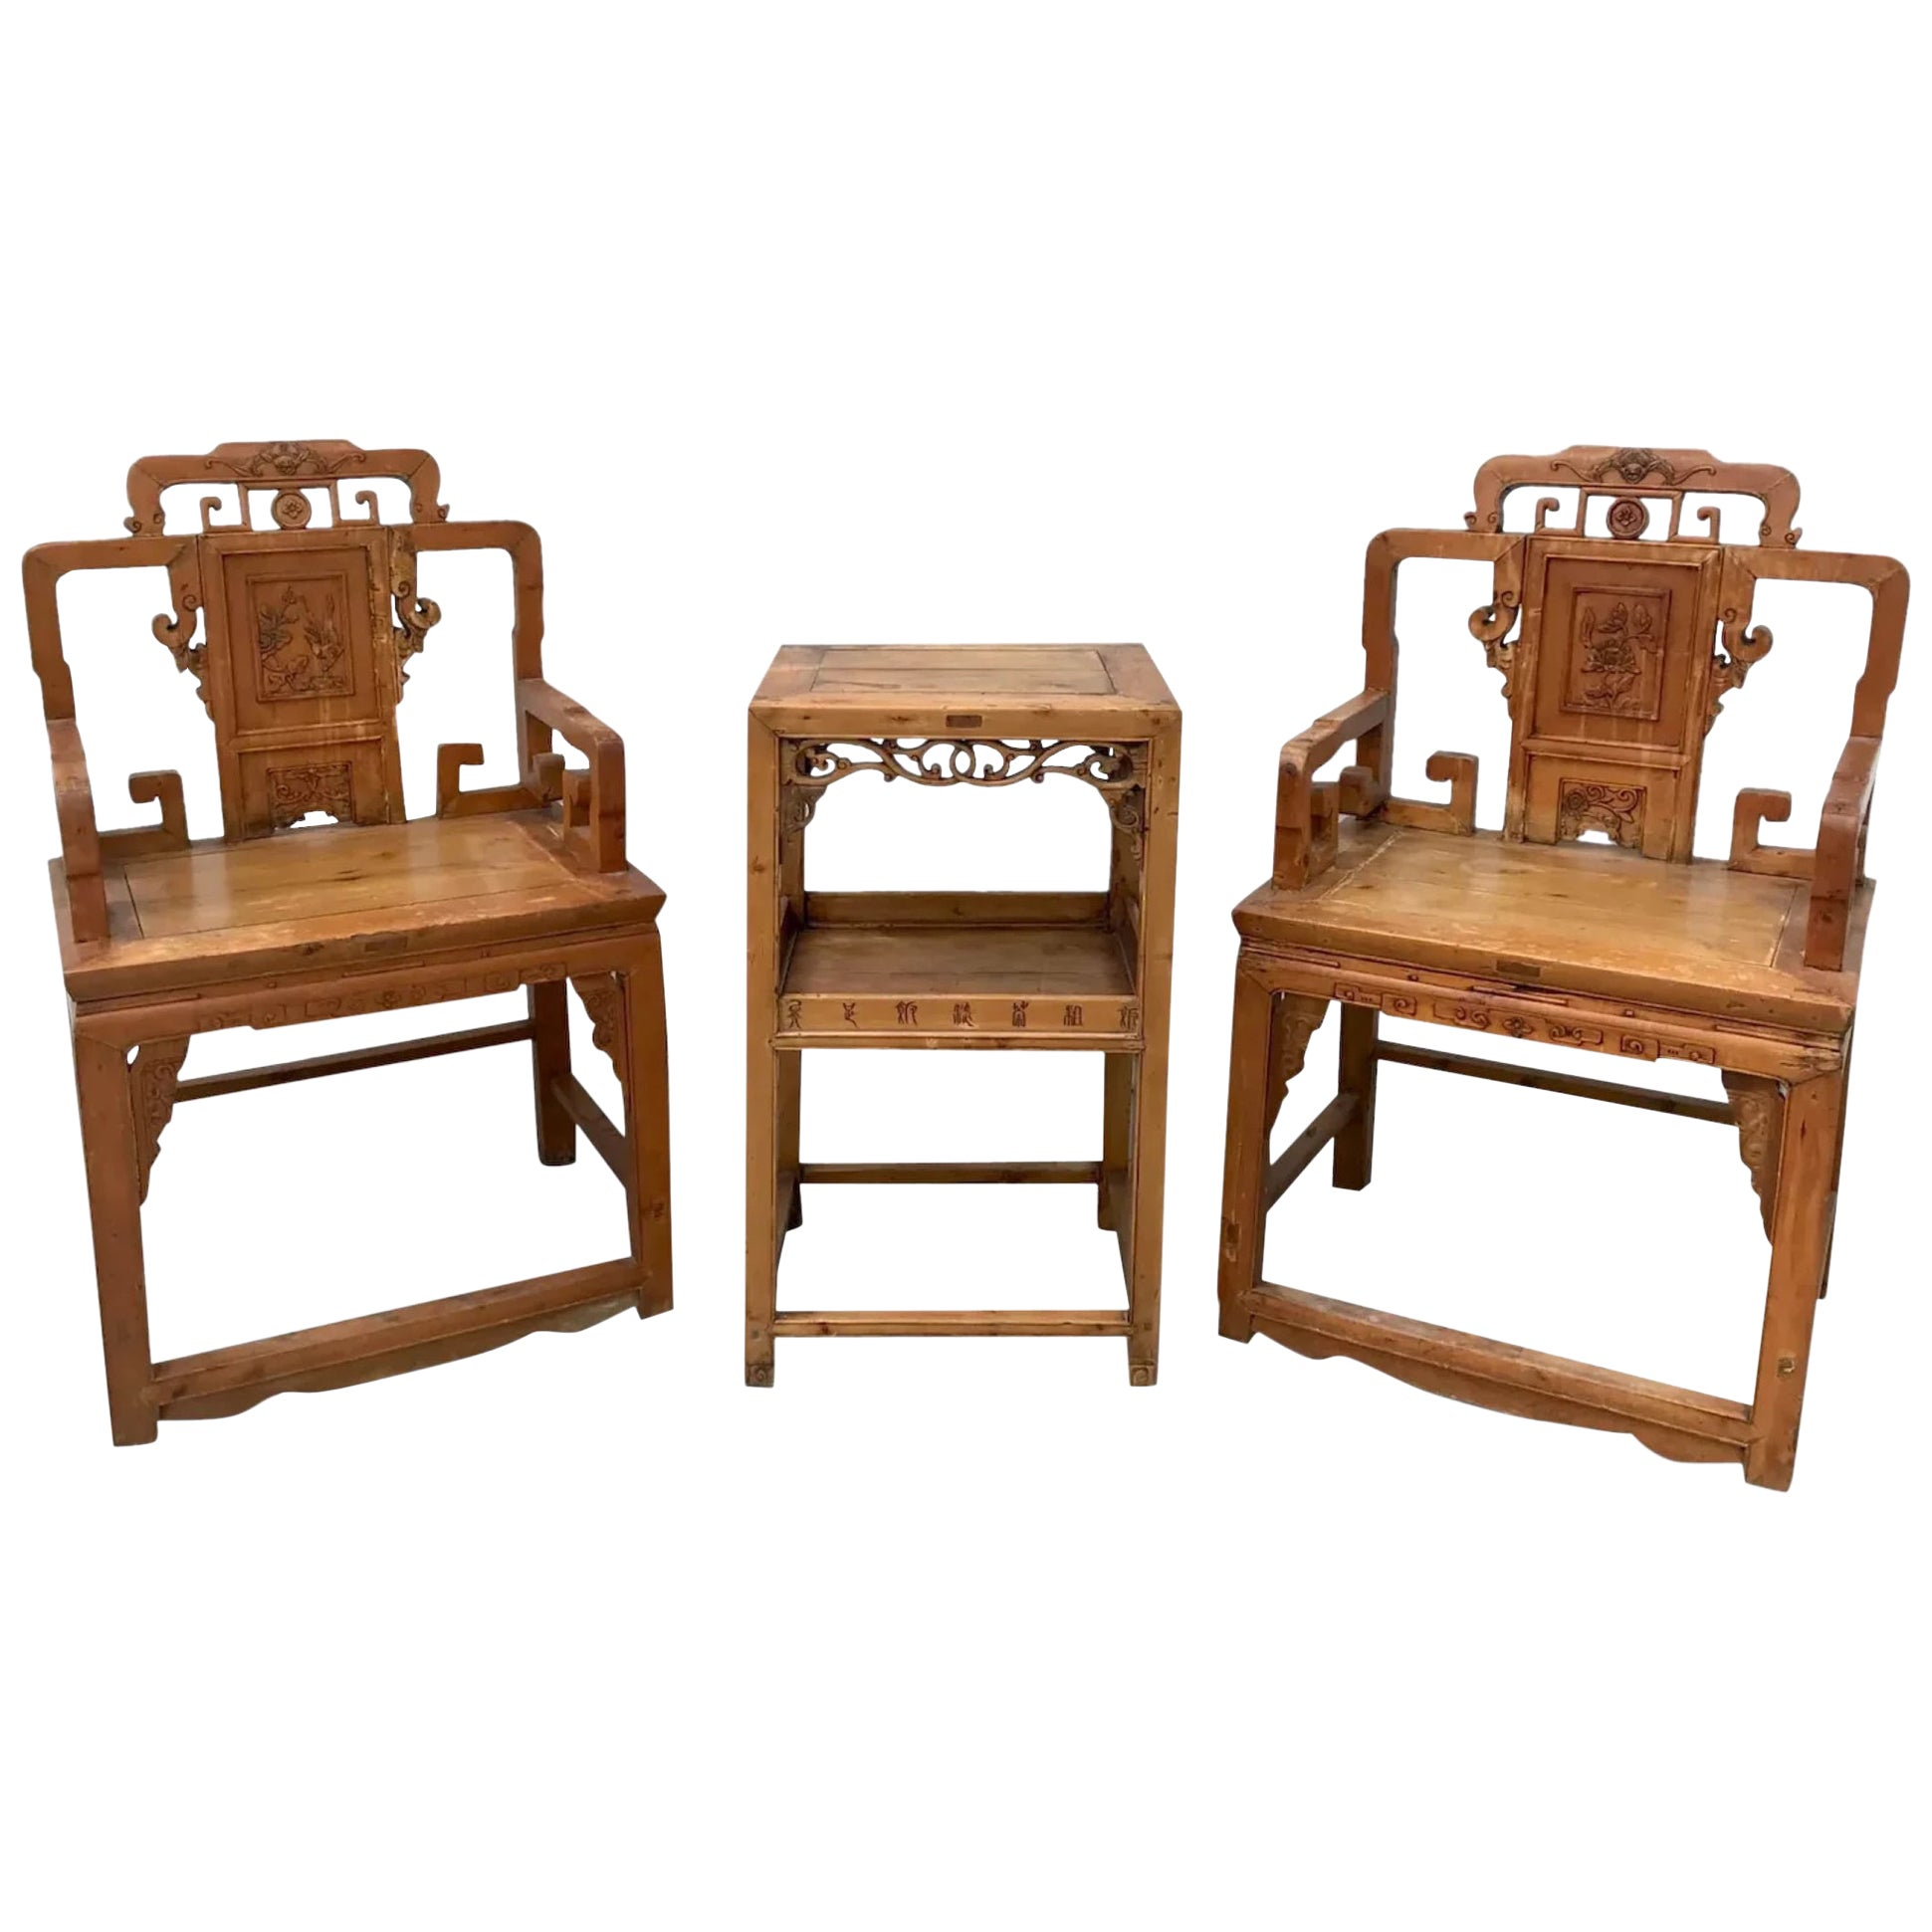 3-Piece Set of Qing Dynasty Armchairs and Table